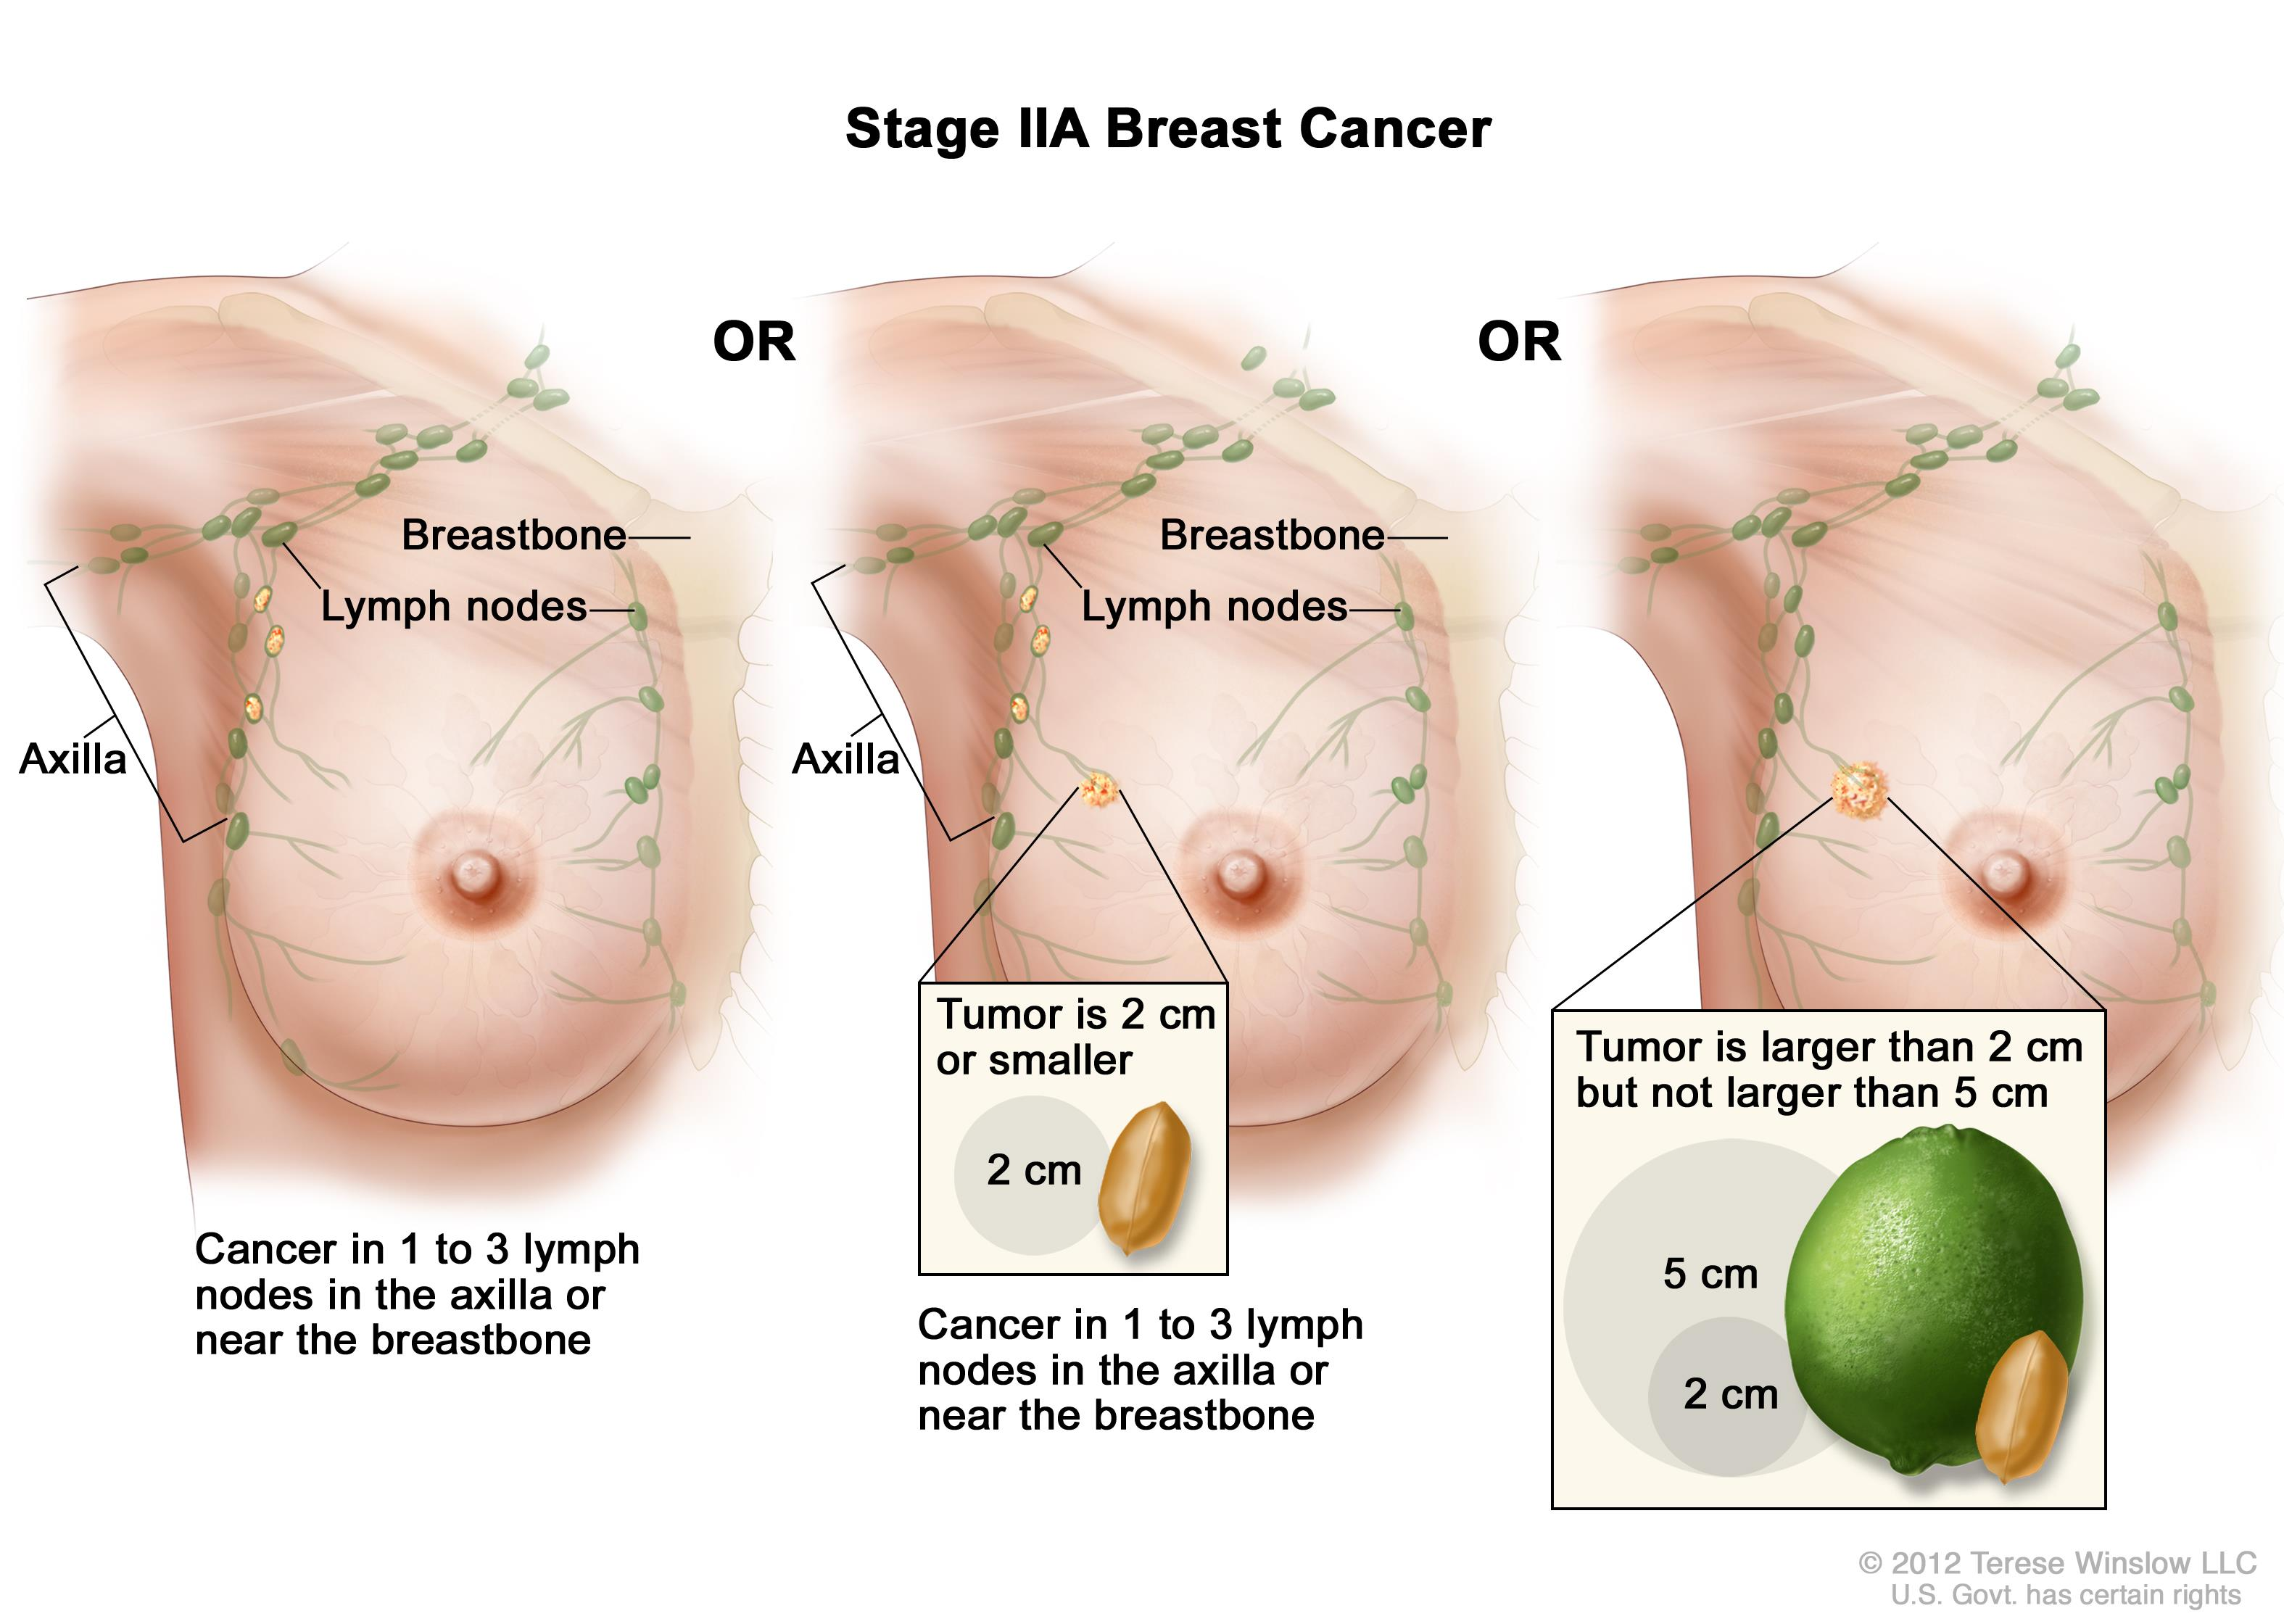 The mass normal in breast